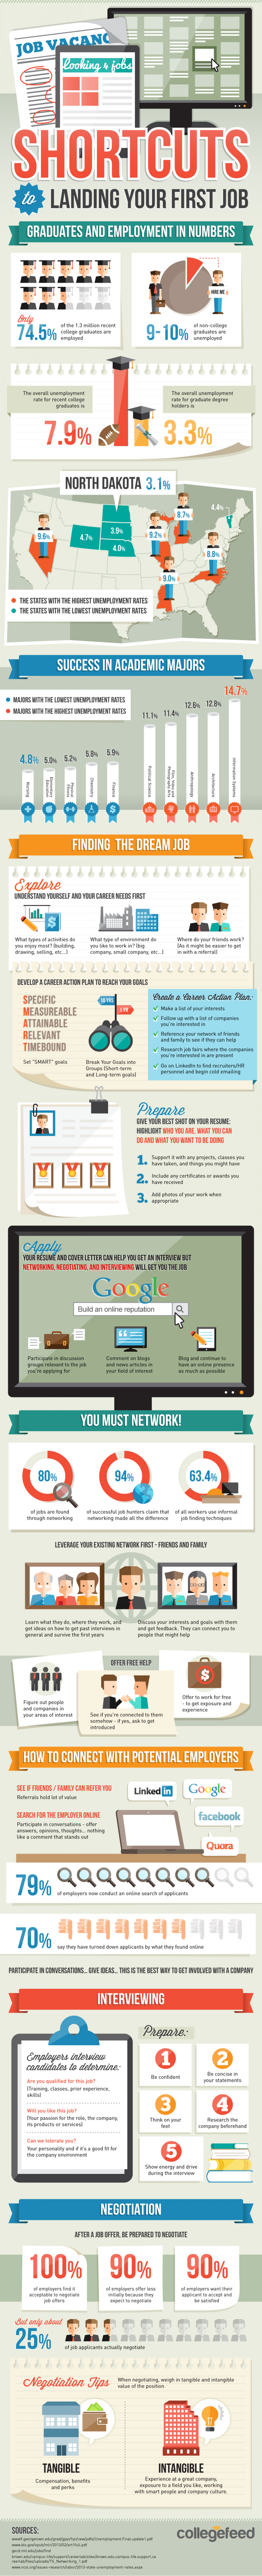 Shortcuts To Landing Your First Job Infographic